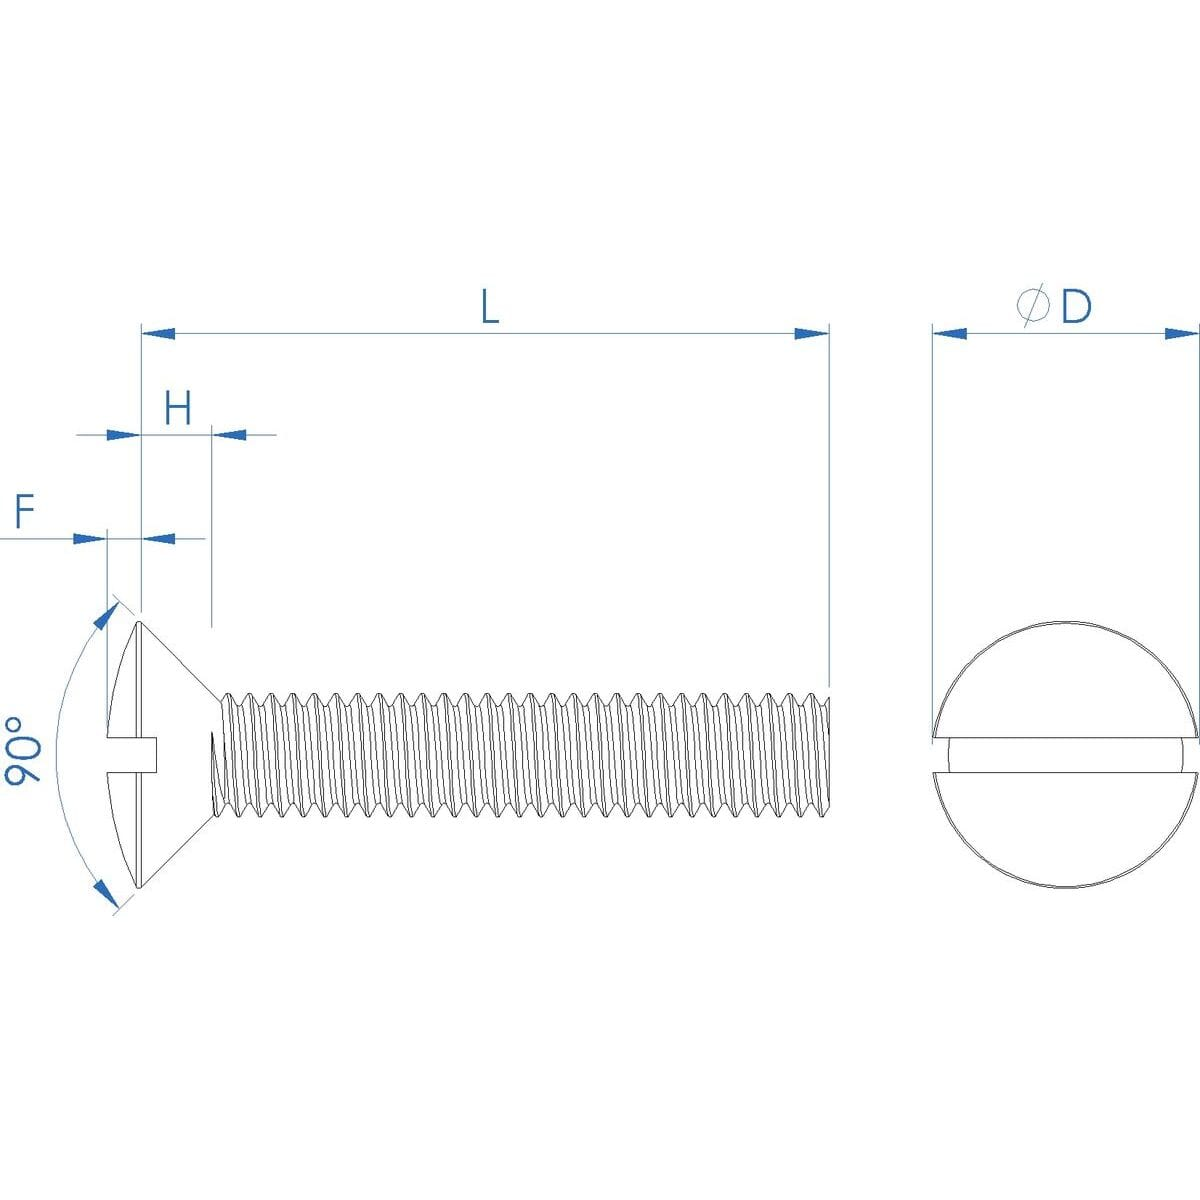 M3 x 8mm Raised Slotted Countersunk Screws (DIN 964) - Stainless Steel (A2) Drawing